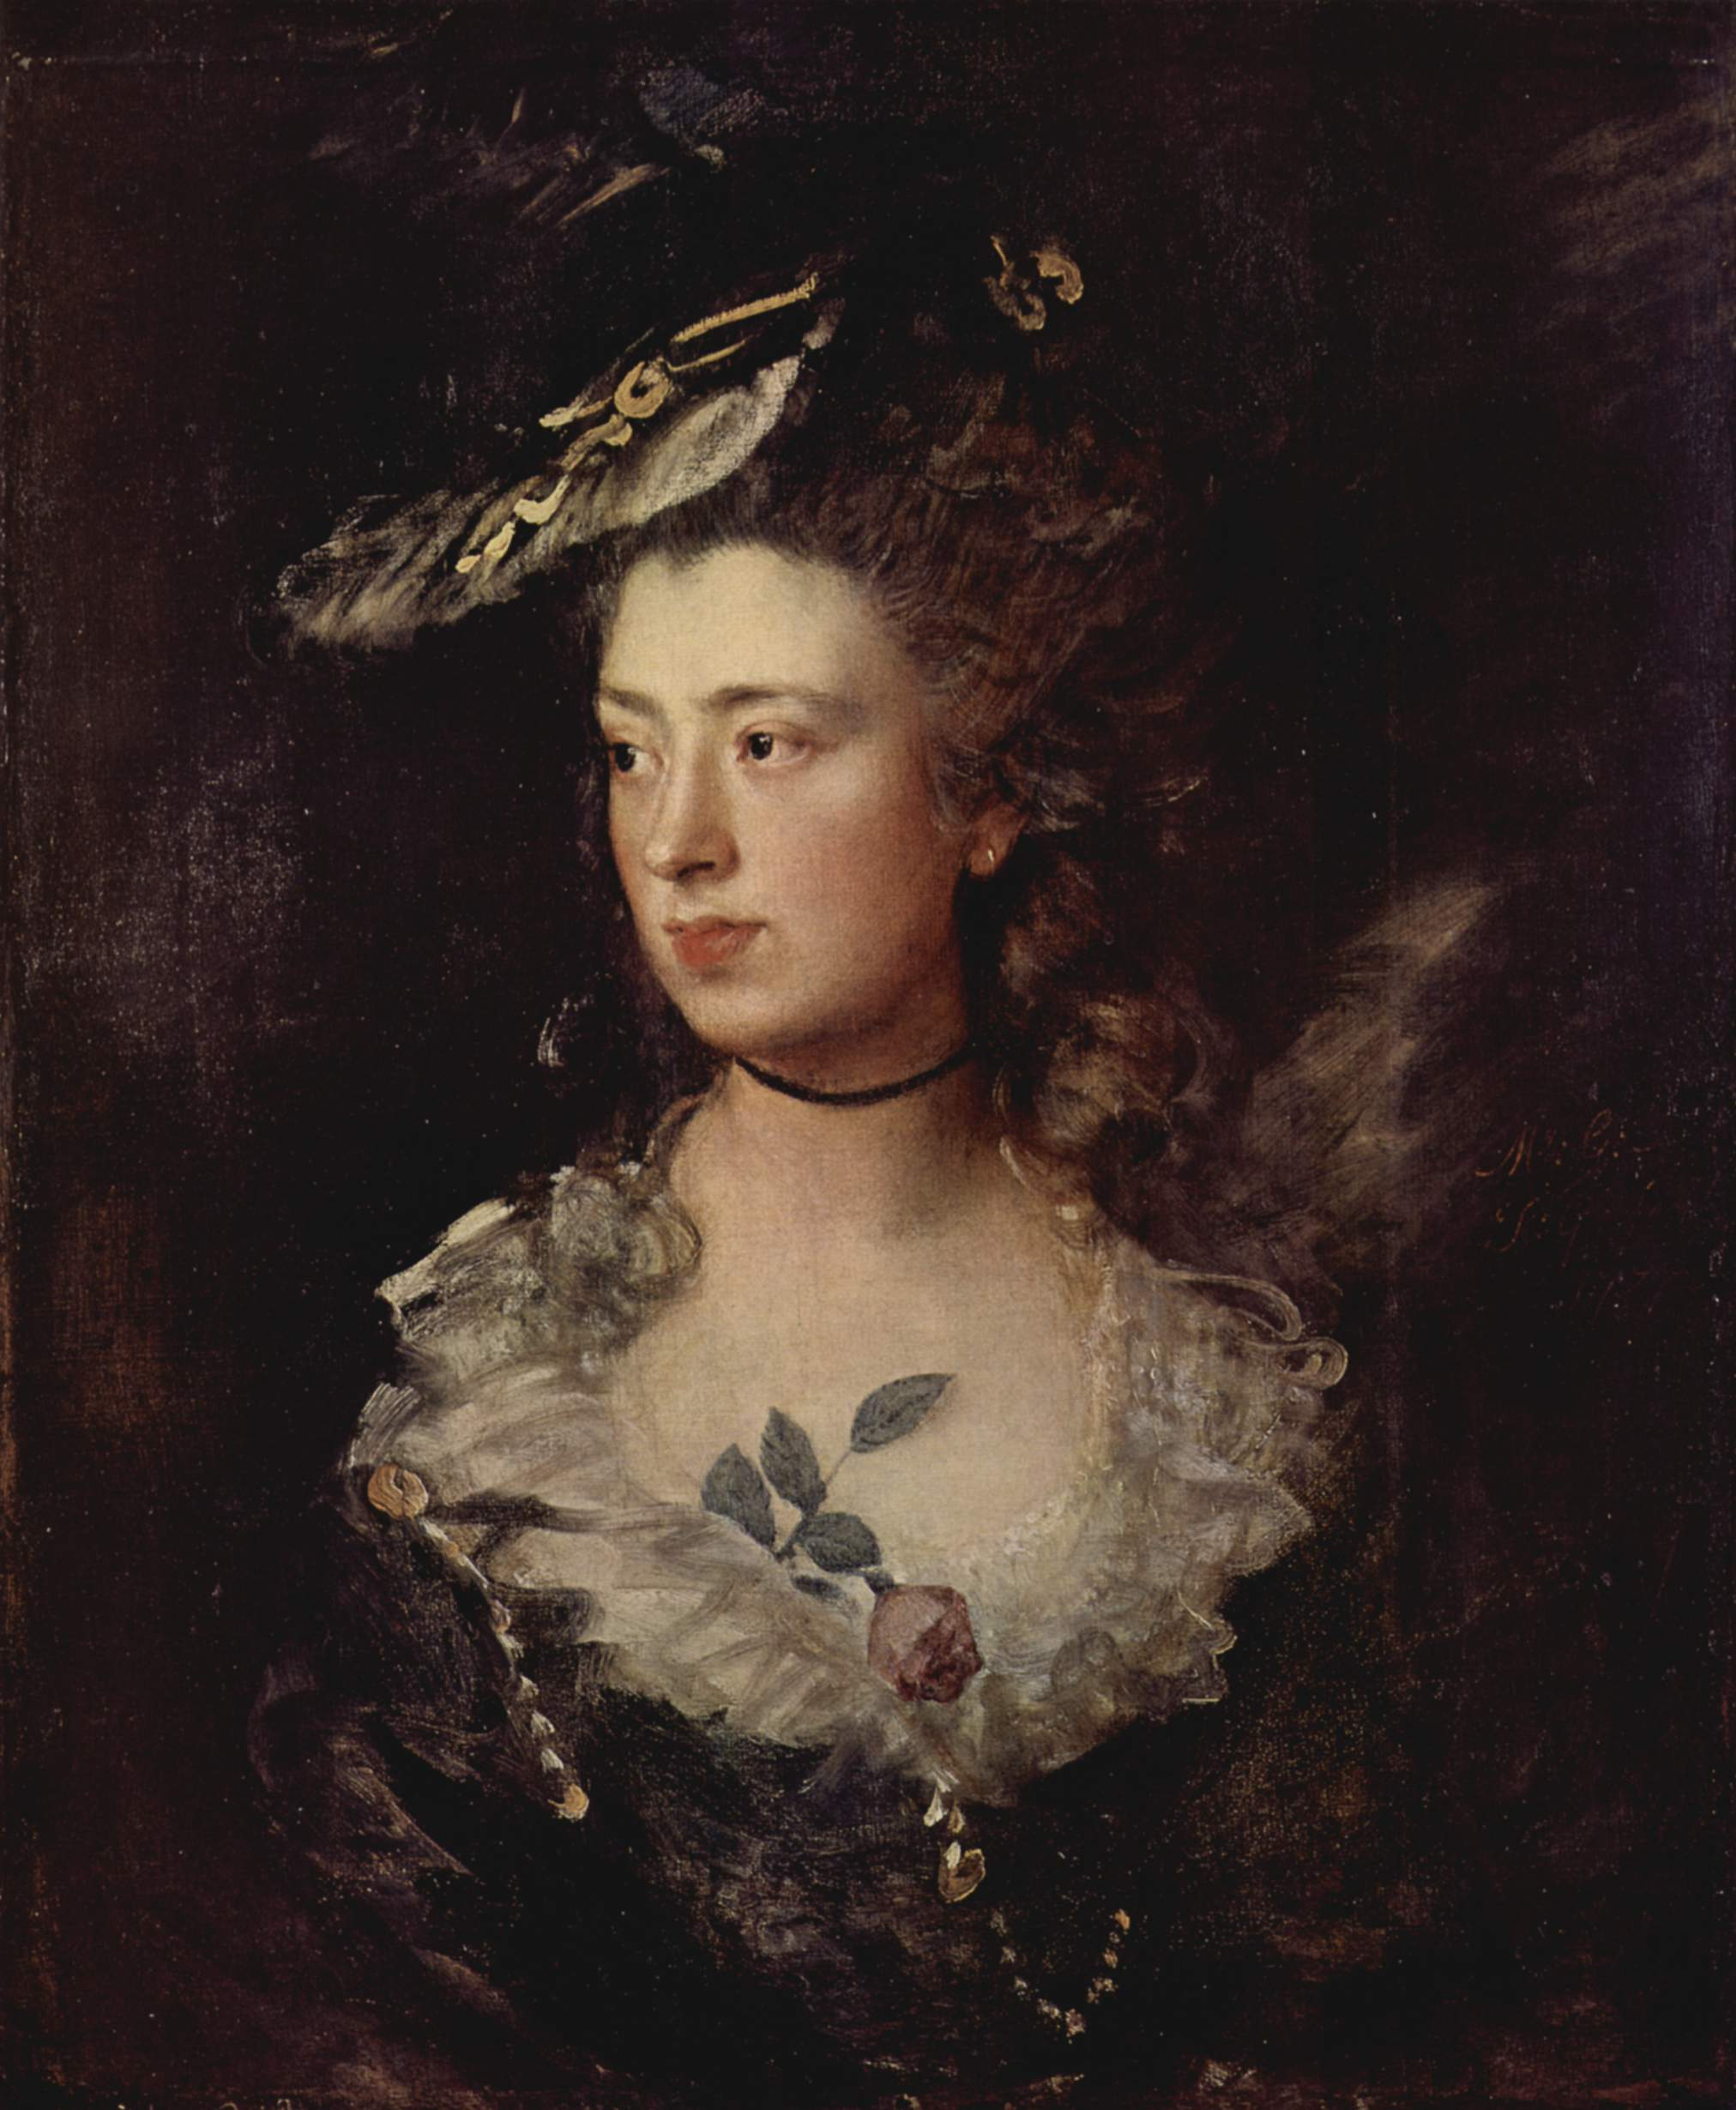 Gainsborough's Daughter Mary